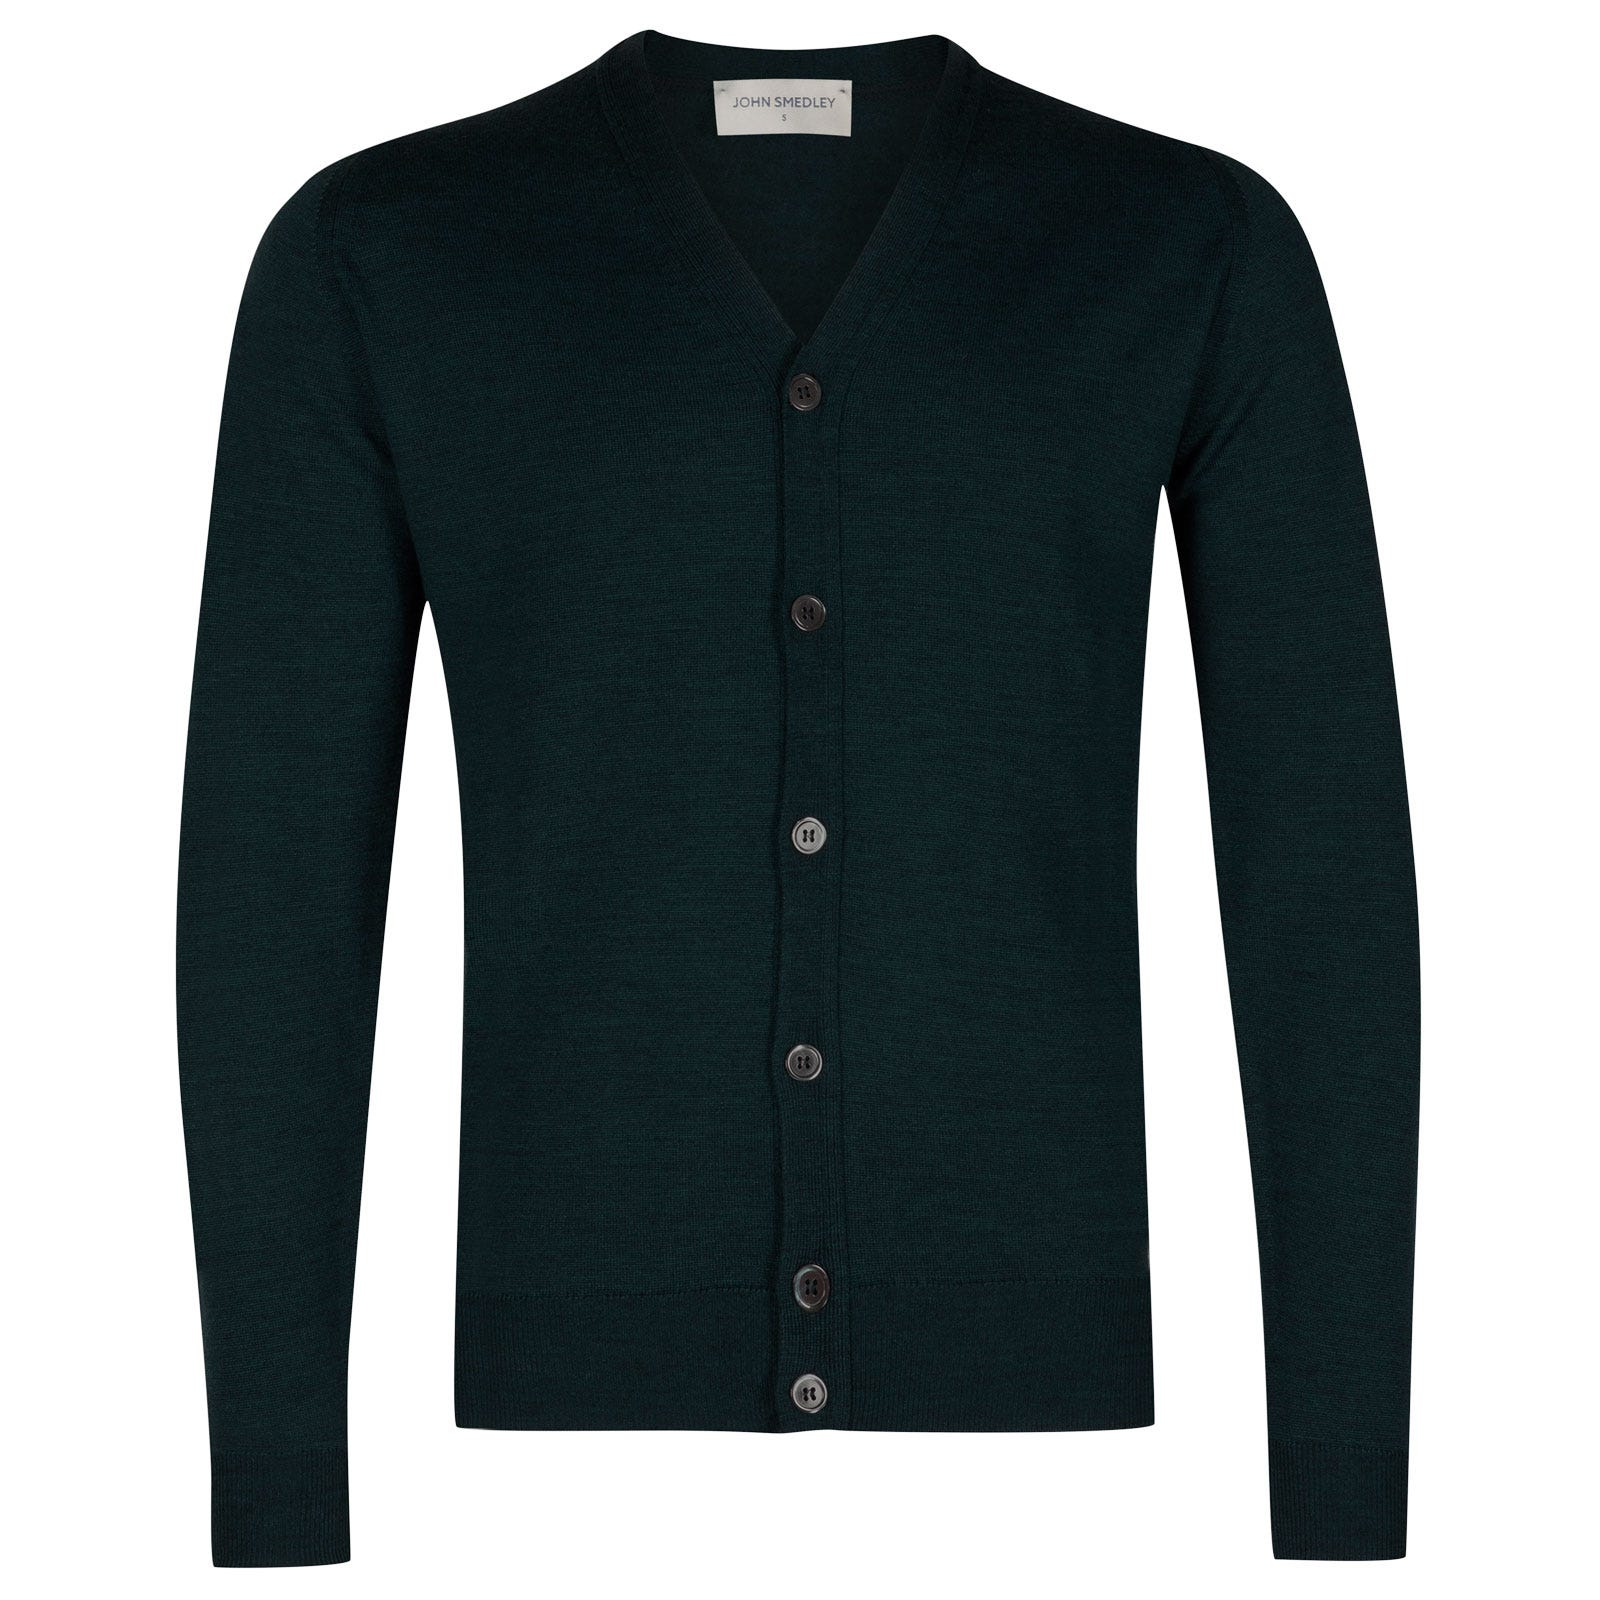 John Smedley burley Merino Wool Cardigan in Racing Green-S